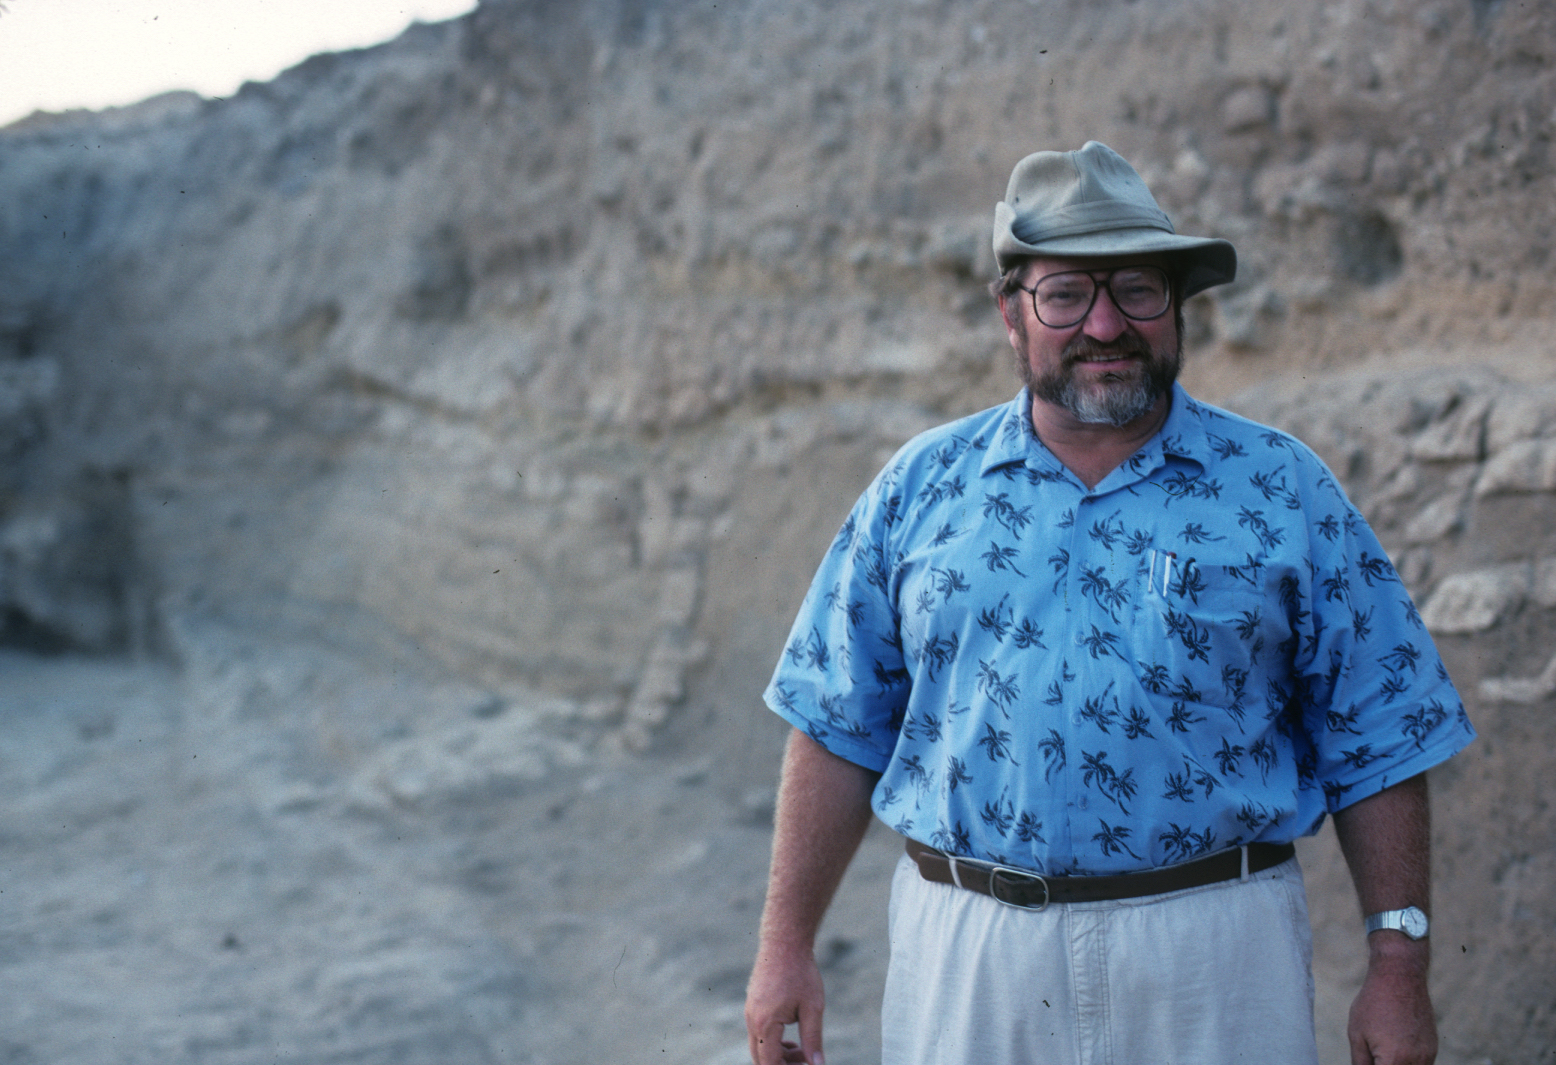 Lawrence E. Stager (1943-2017), historian, archaeologist, mentor